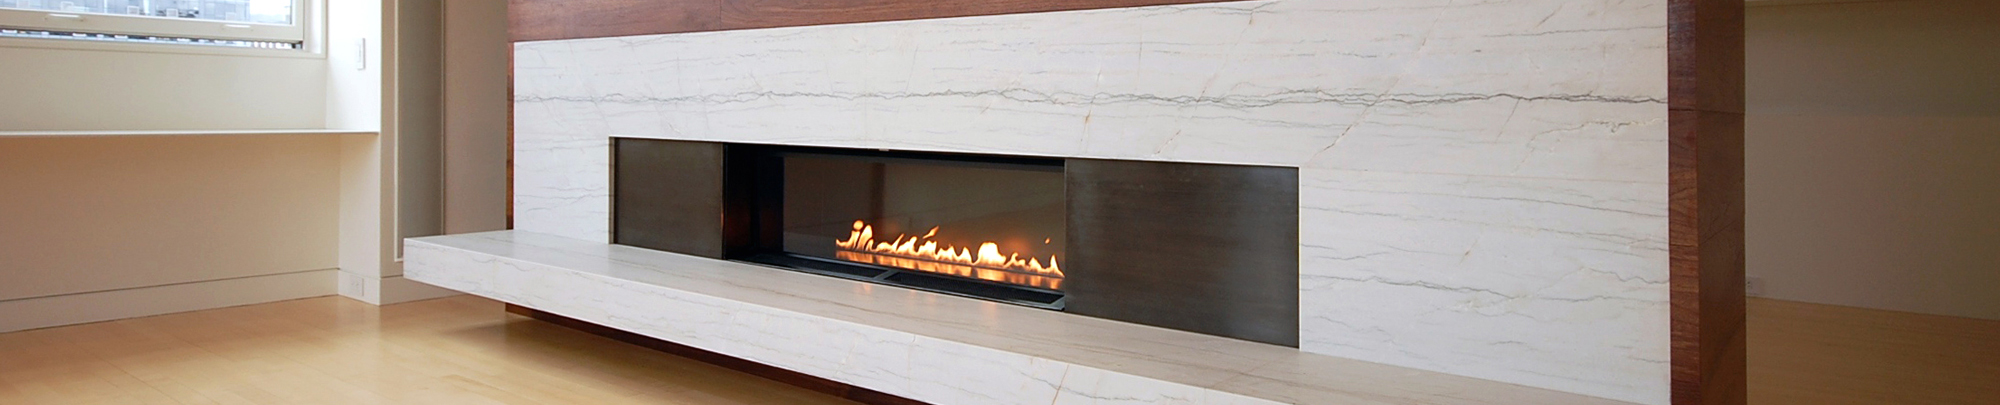 Fire Ribbon Direct Vent Single Vu - Spark Modern Fires